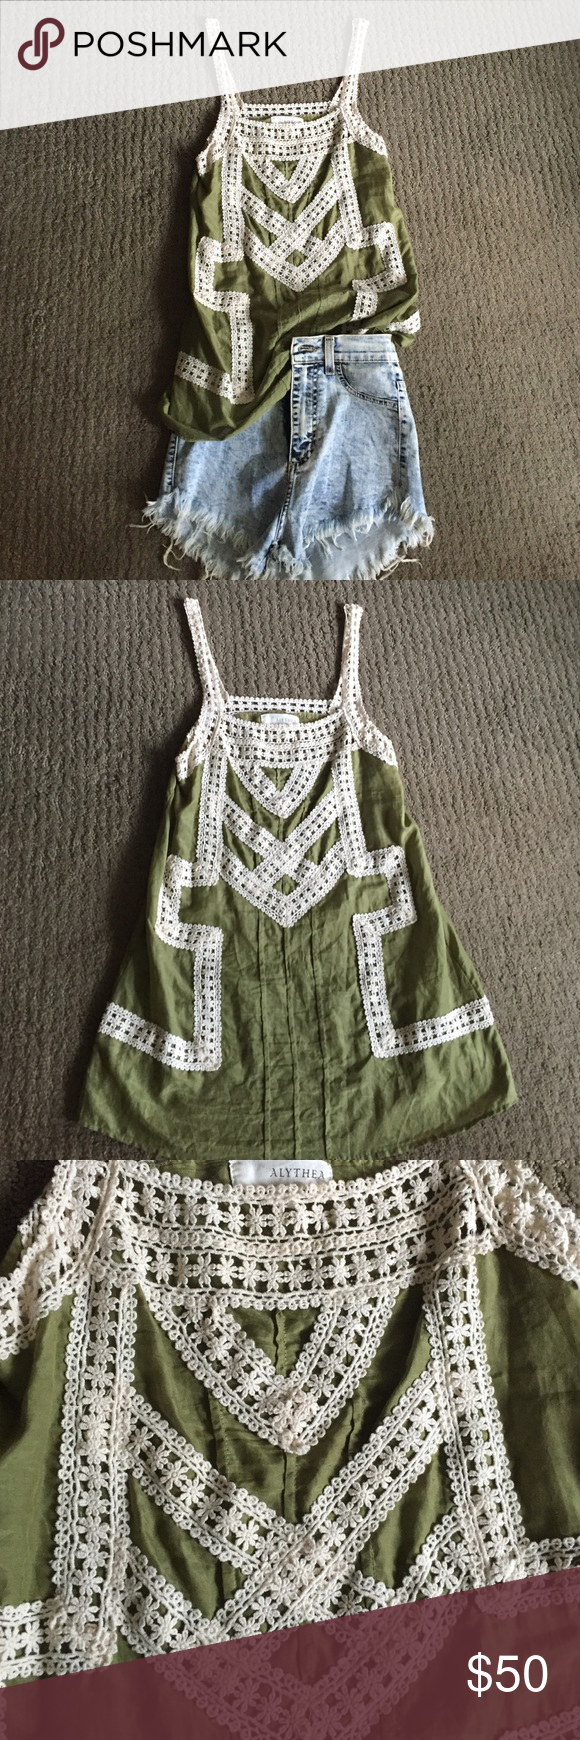 Gorgeous Green Lace Tunic This could be a top or a short dress- very cute! And worn only a handful of times. Purchased at a boutique - it is NOT Anthropologie- the tag says alythea Anthropologie Tops Tunics